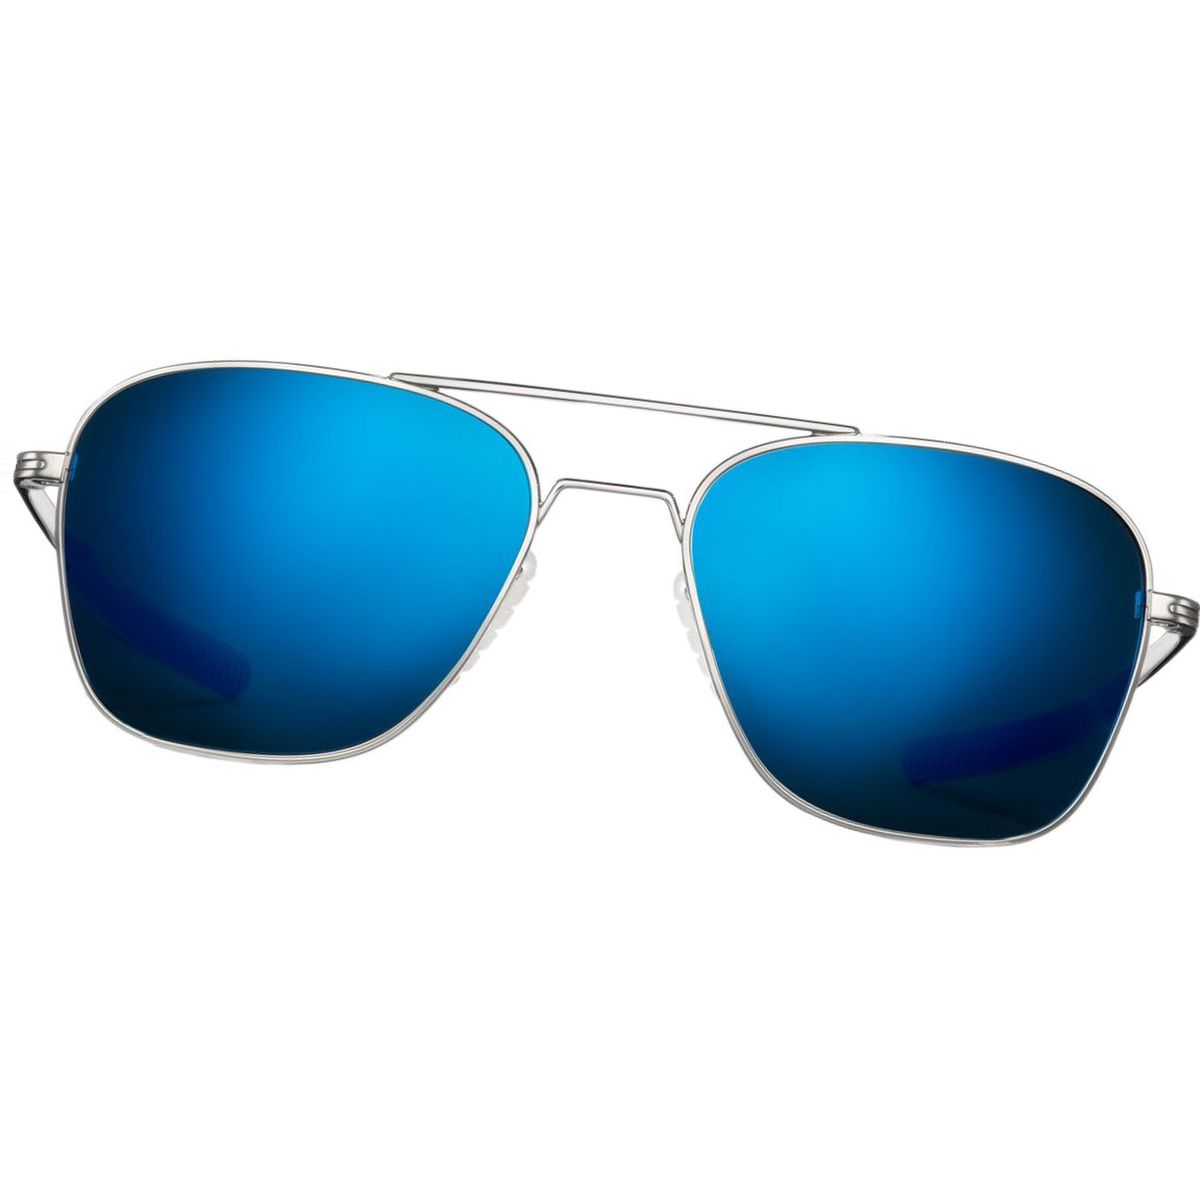 Roka Falcon Titanium Sunglasses - Women's